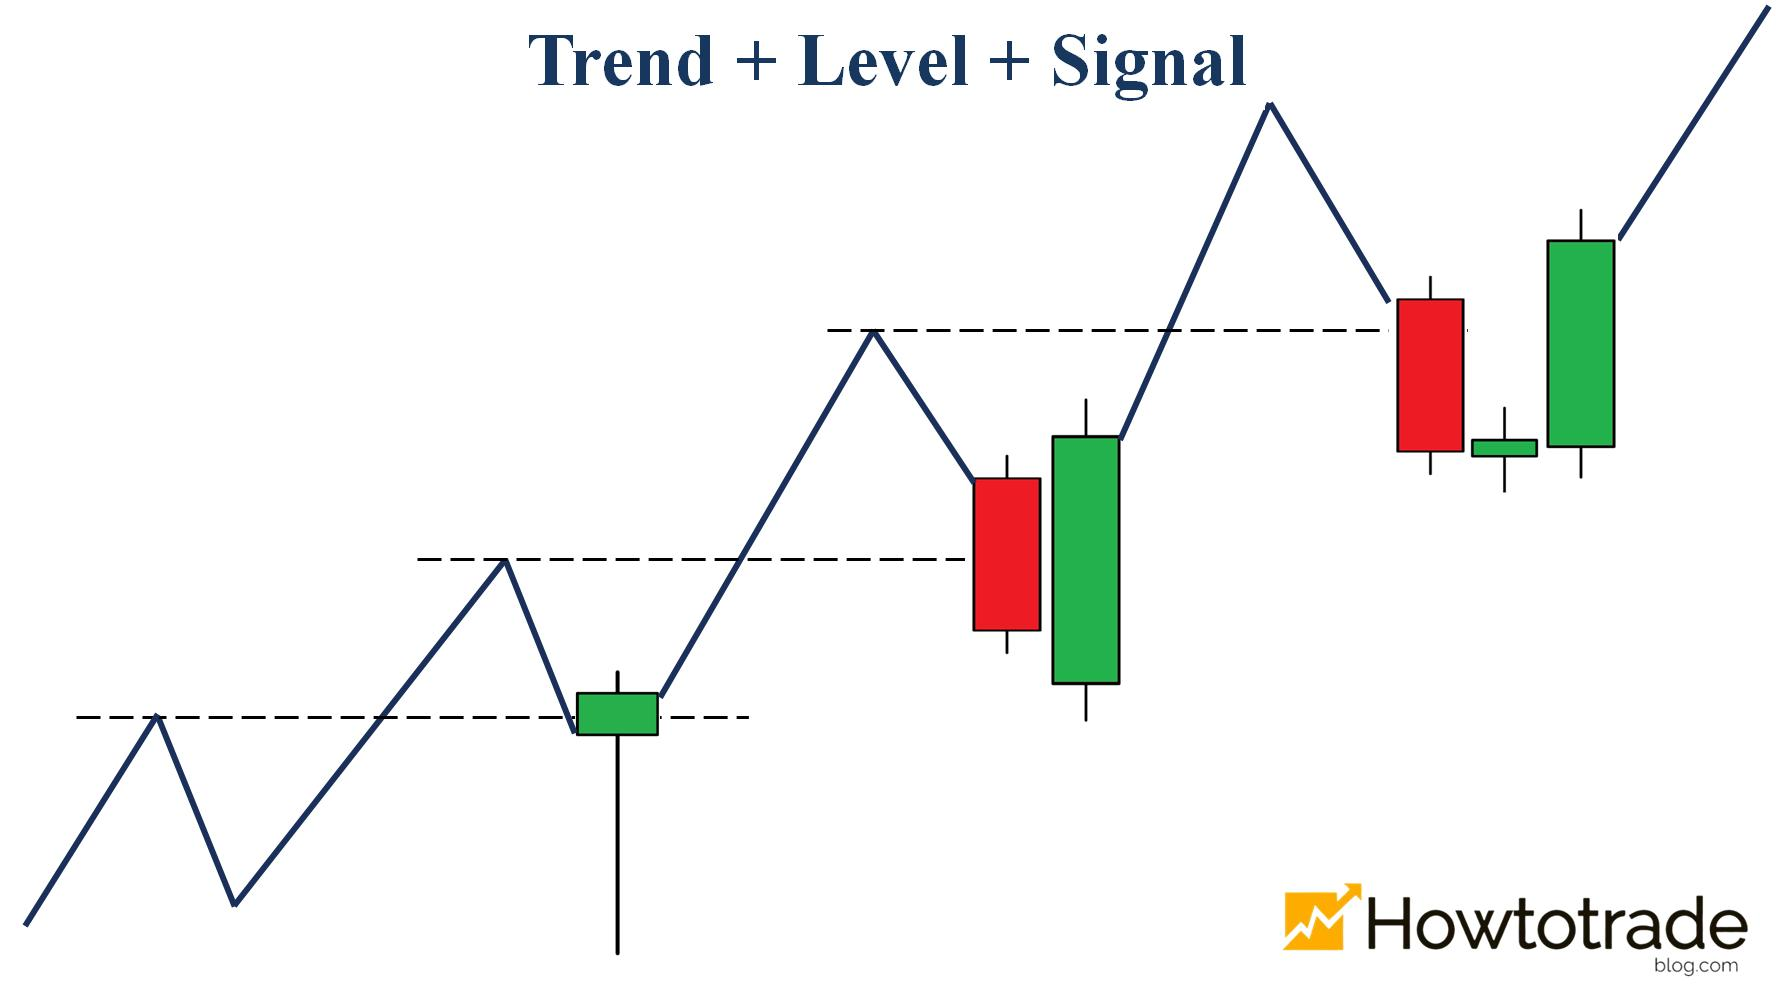 A reversal candlestick pattern appears at levels in an uptrend